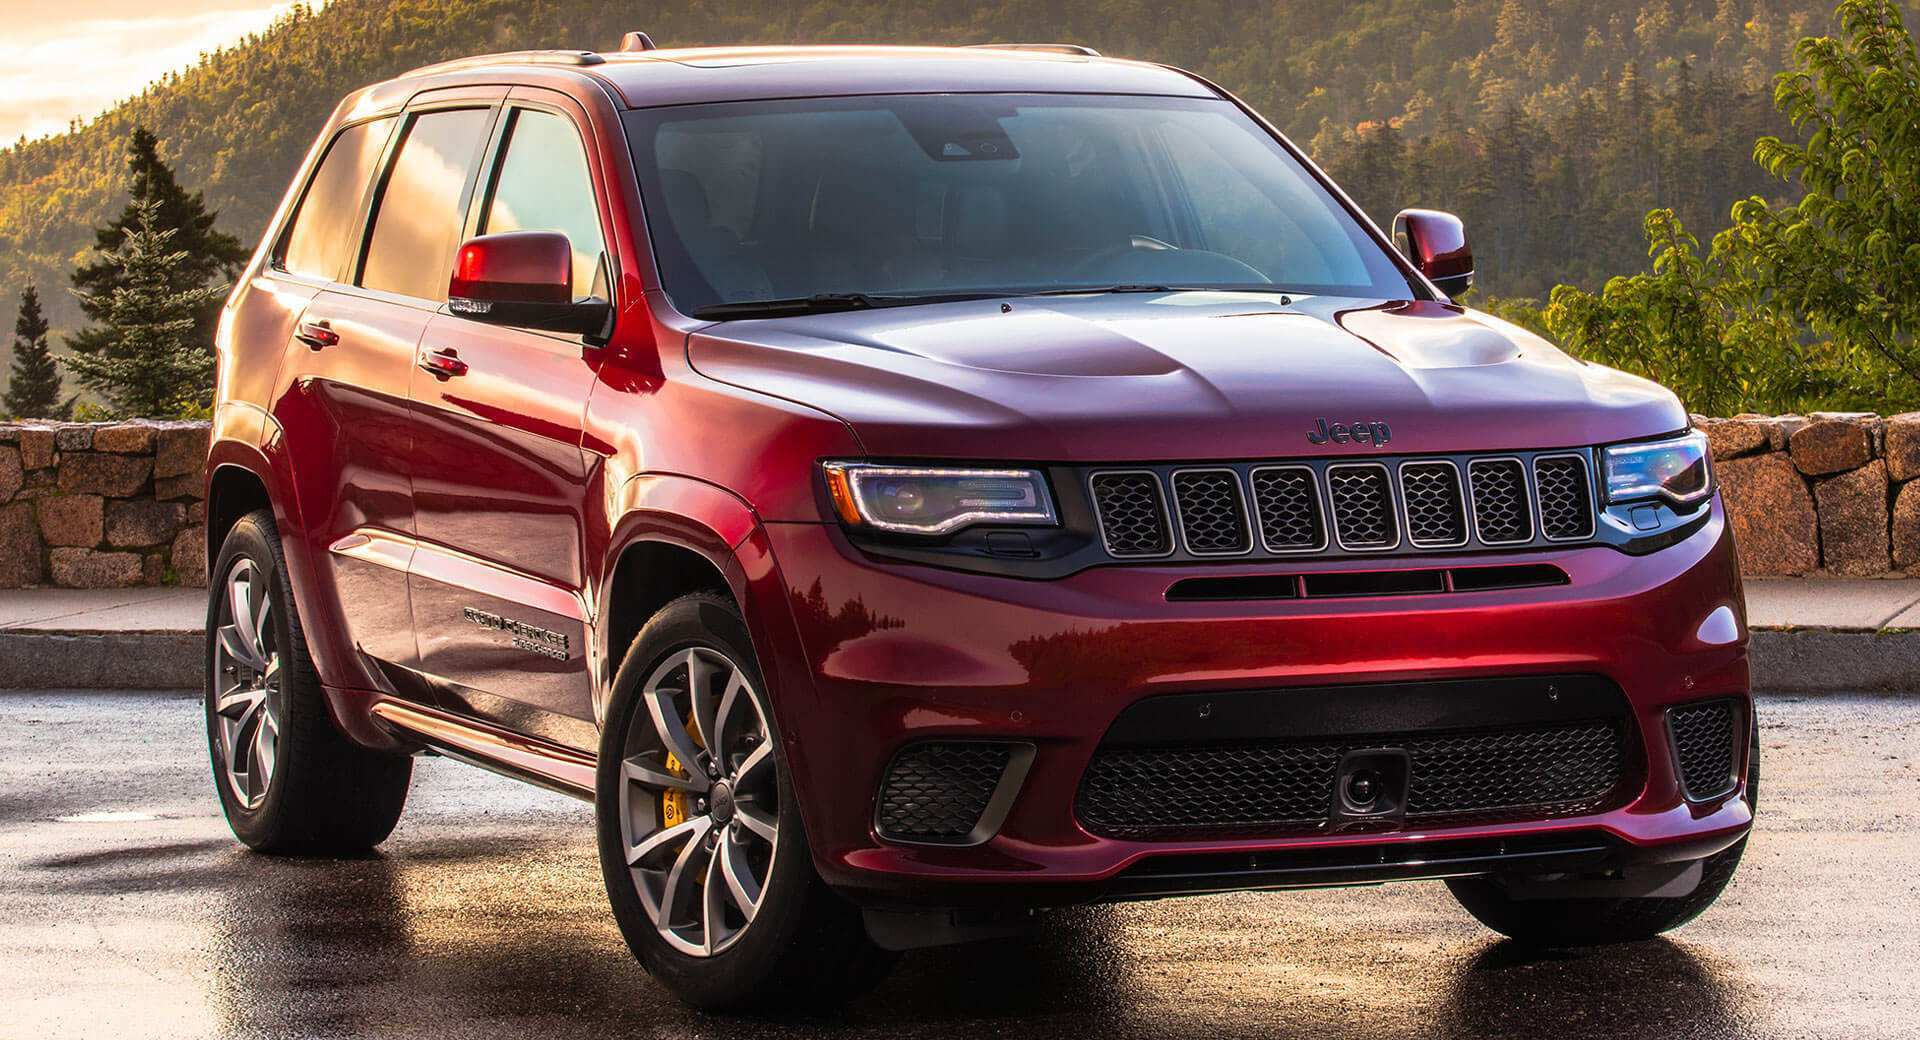 38 Best Review Best 2019 Jeep Grand Cherokee Limited X New Interior Images with Best 2019 Jeep Grand Cherokee Limited X New Interior